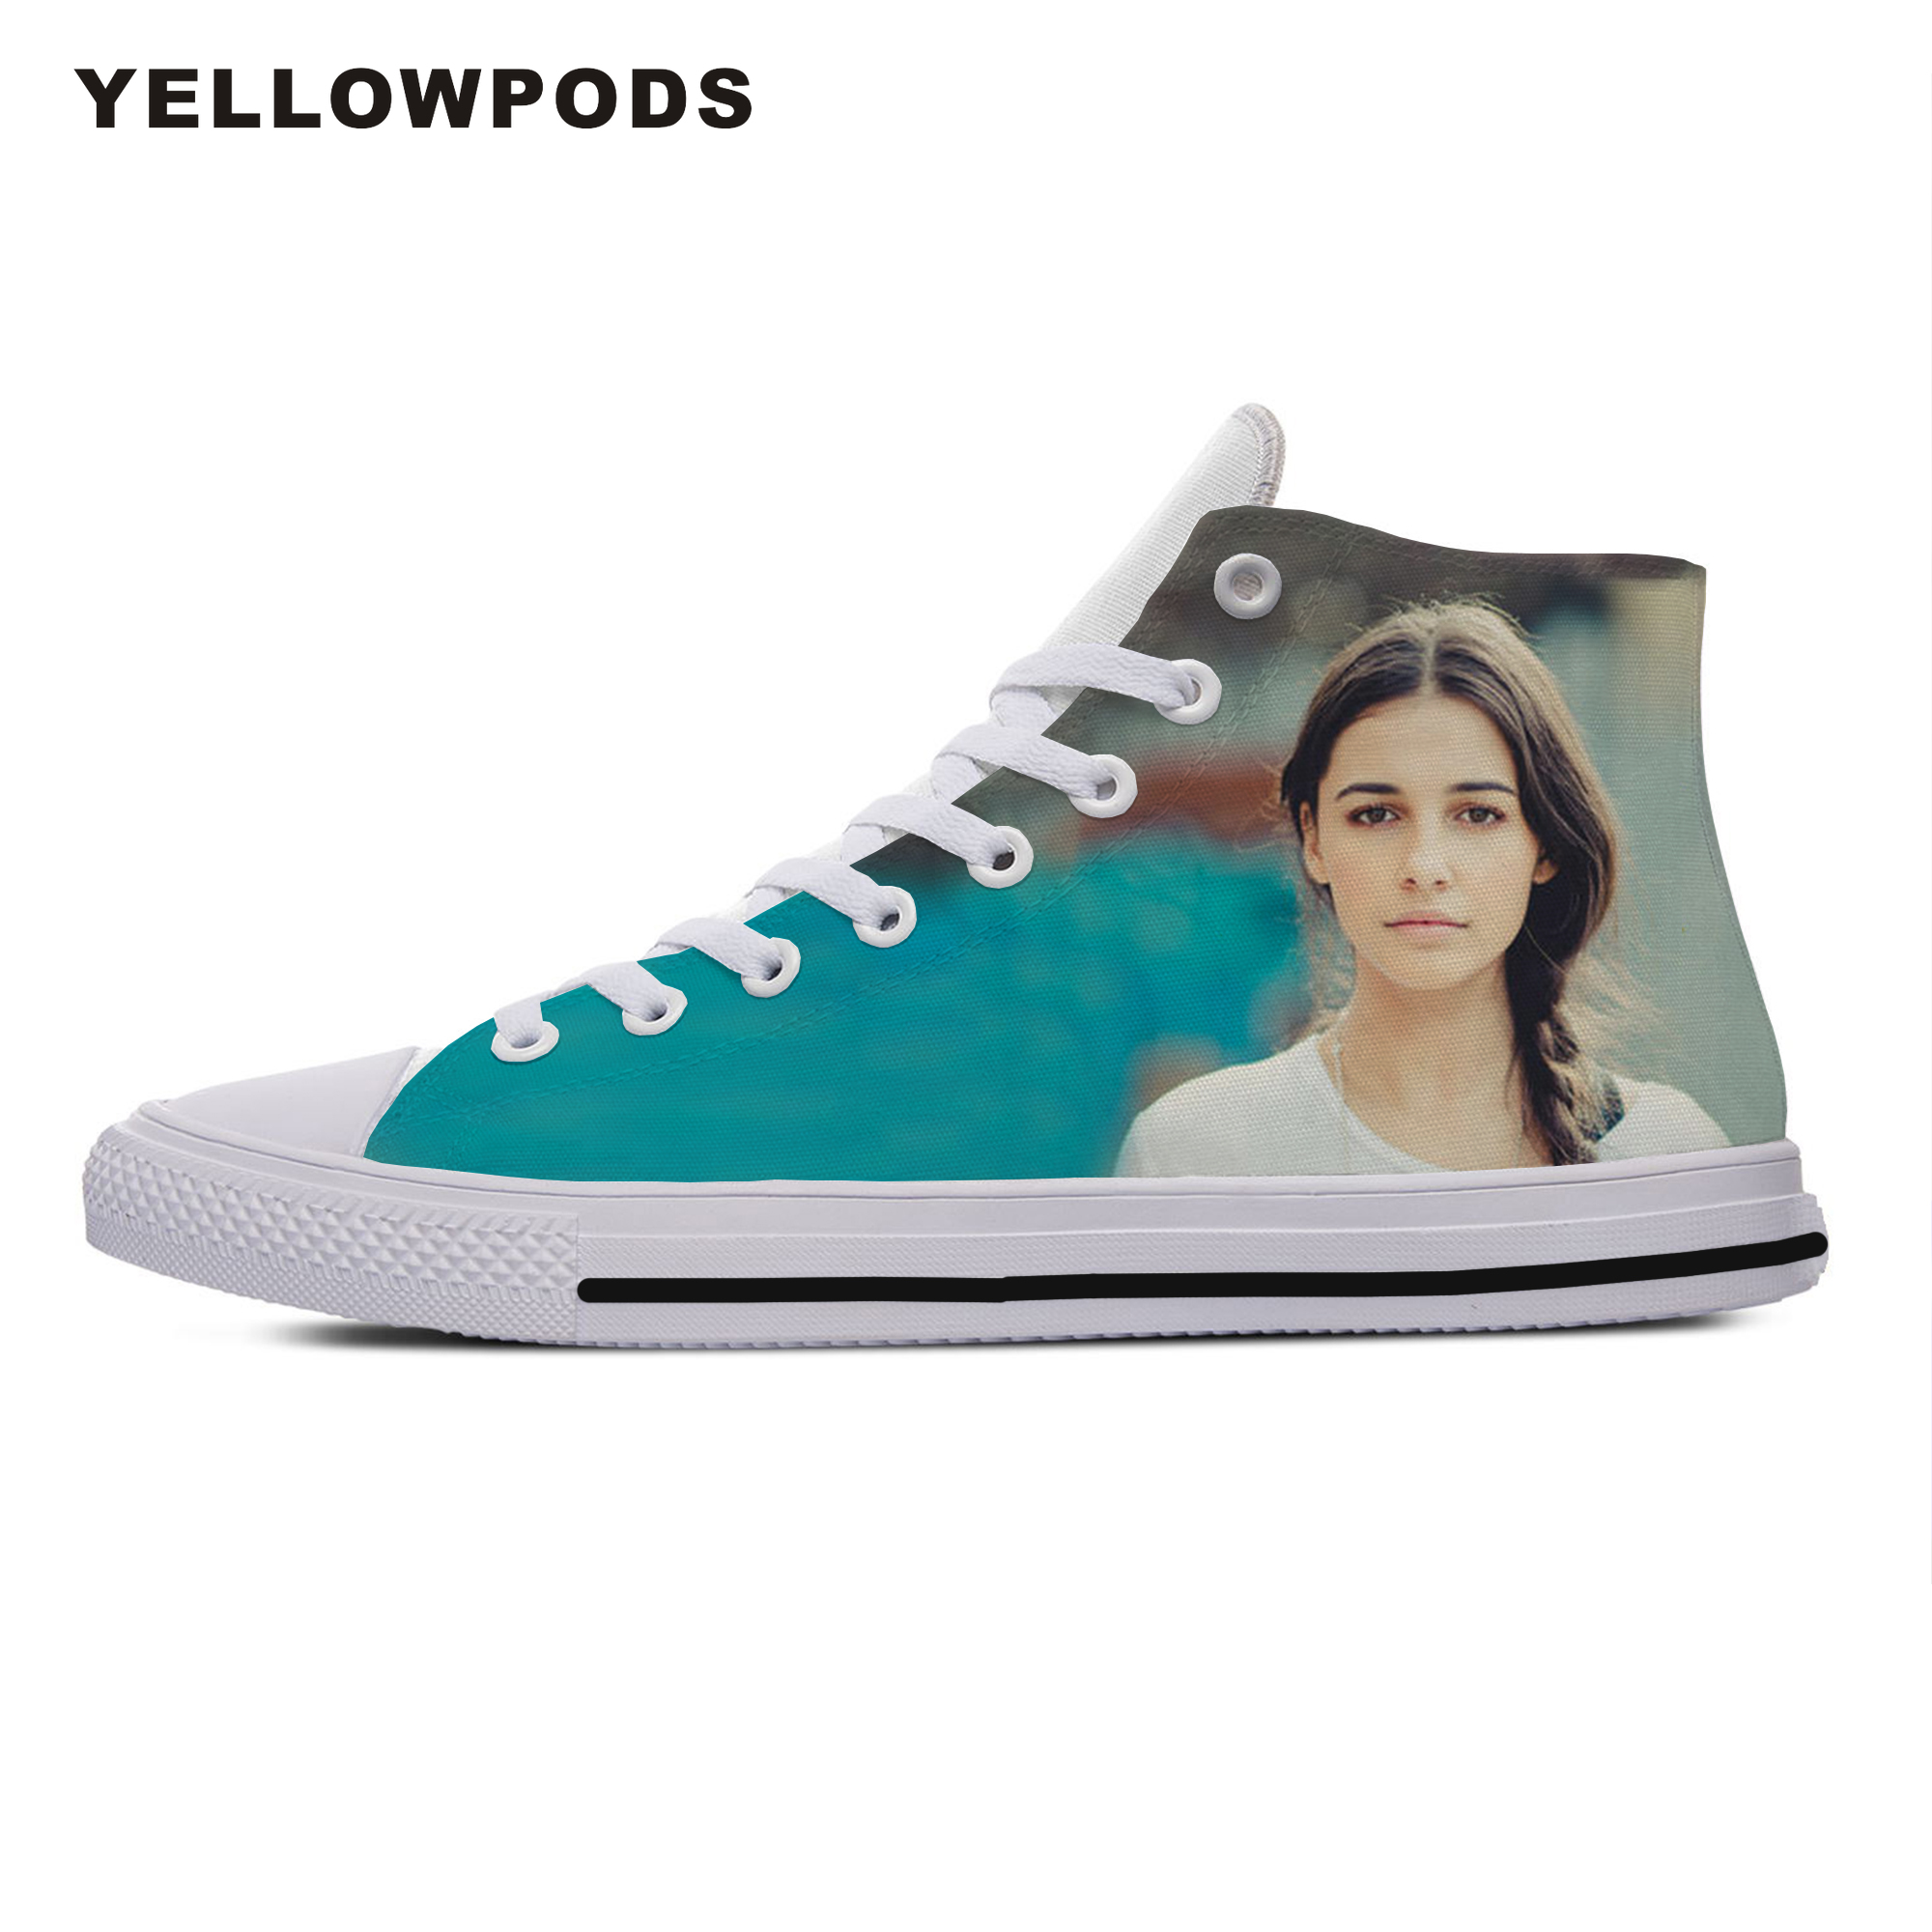 Personality Men's Casual Shoes Hot Cool Pop Funny High Quality Handiness Naomi Scott Cute Cartoon Custom Sneakers White